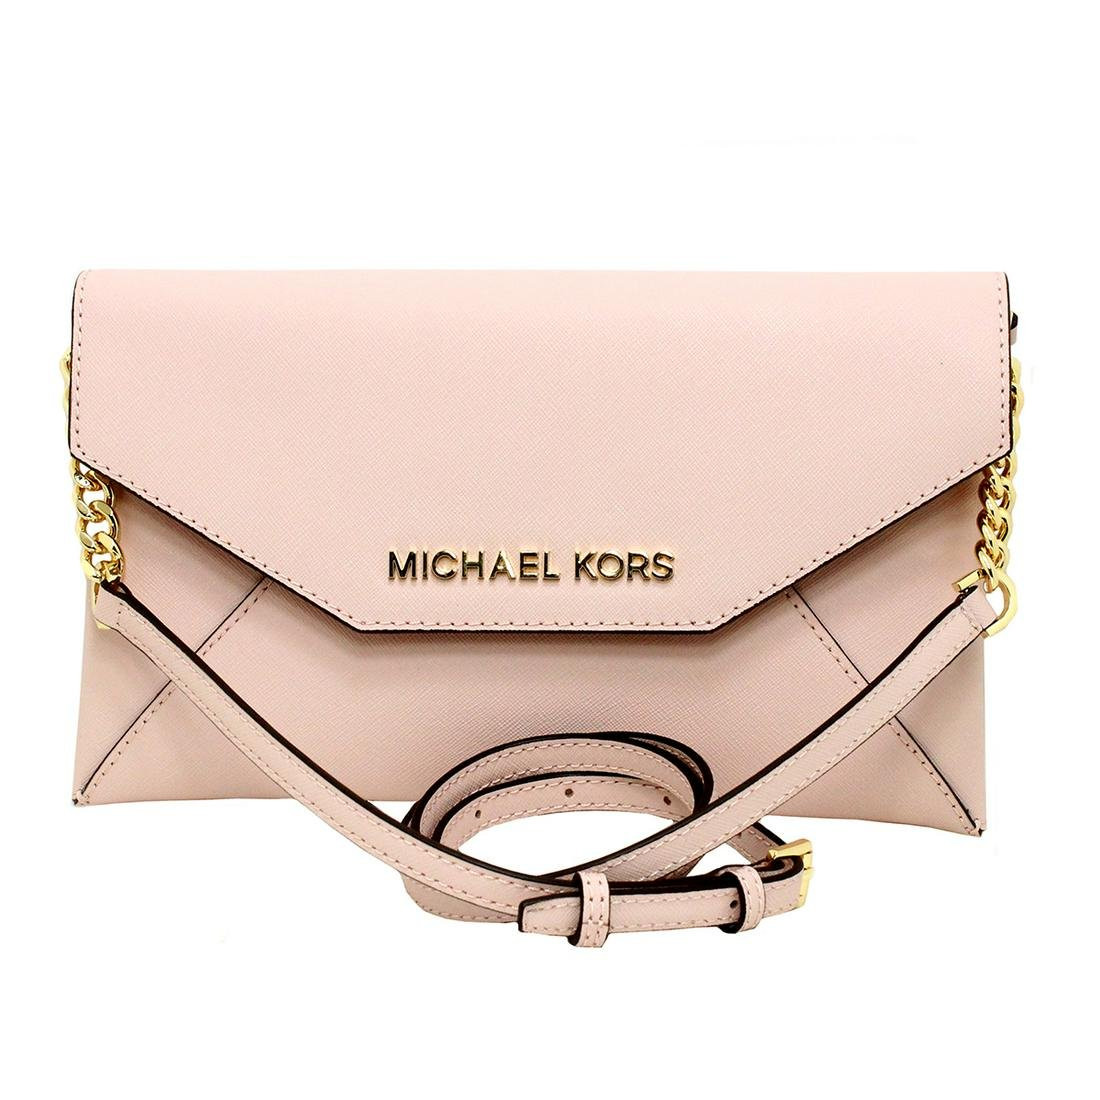 Gorgeous Brand New Never Used Blossom Michael Kors